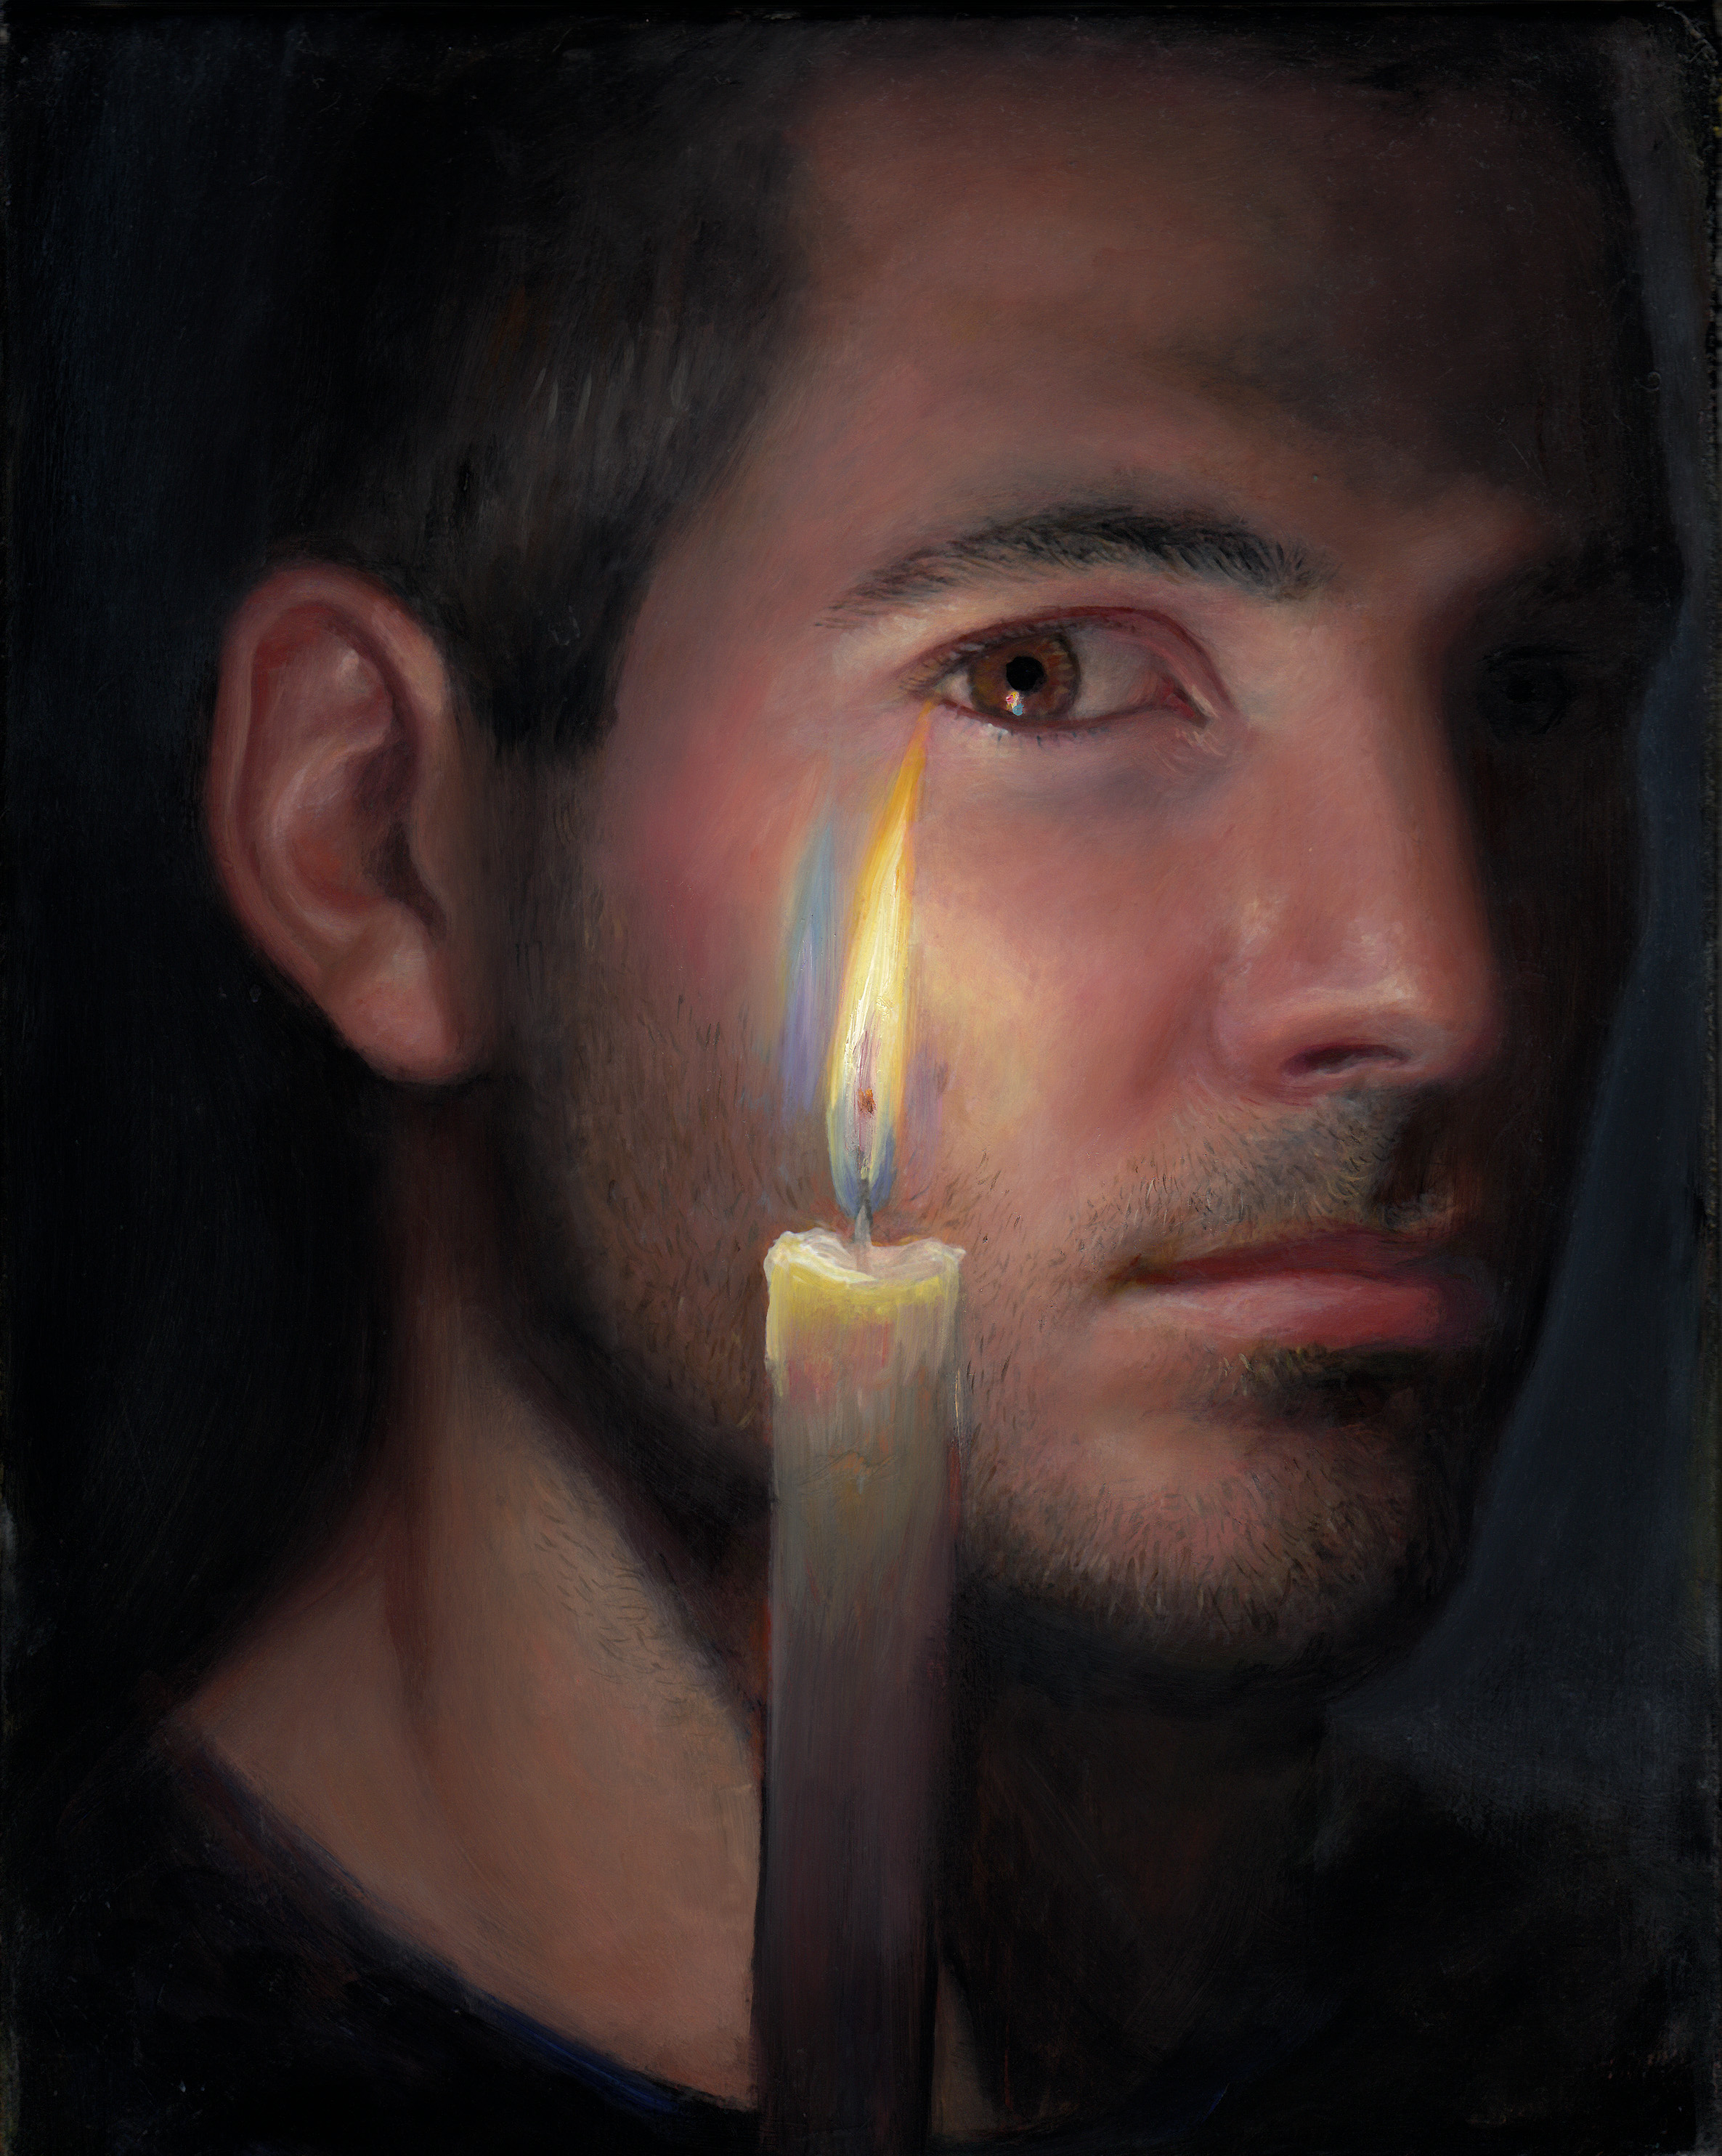 tm davy, candela (self), 10x8 inches, oil on linen, 2013-hero